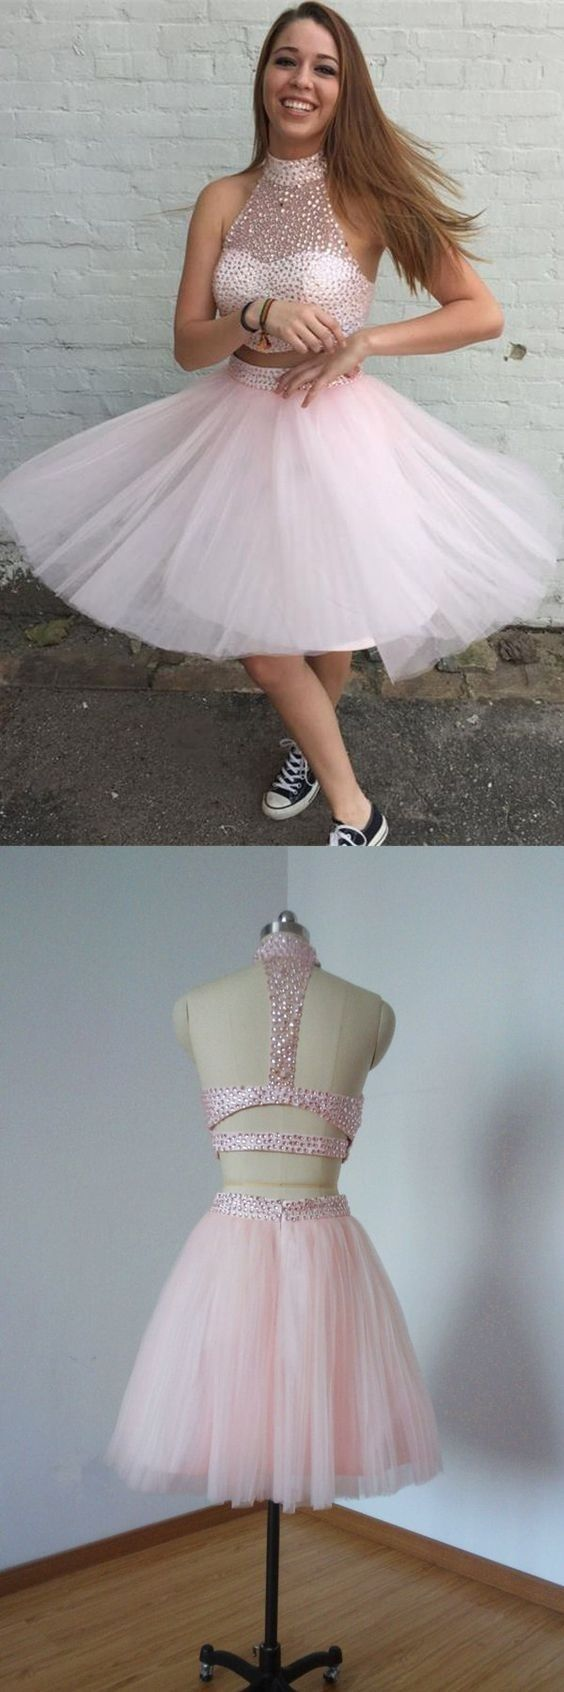 Pink Homecoming Dress,2 Piece Homecoming Dresses,Silver Beading Homecoming Gowns,Short Prom Gown,Blush Pink Sweet 16 Dress,Homecoming Dress